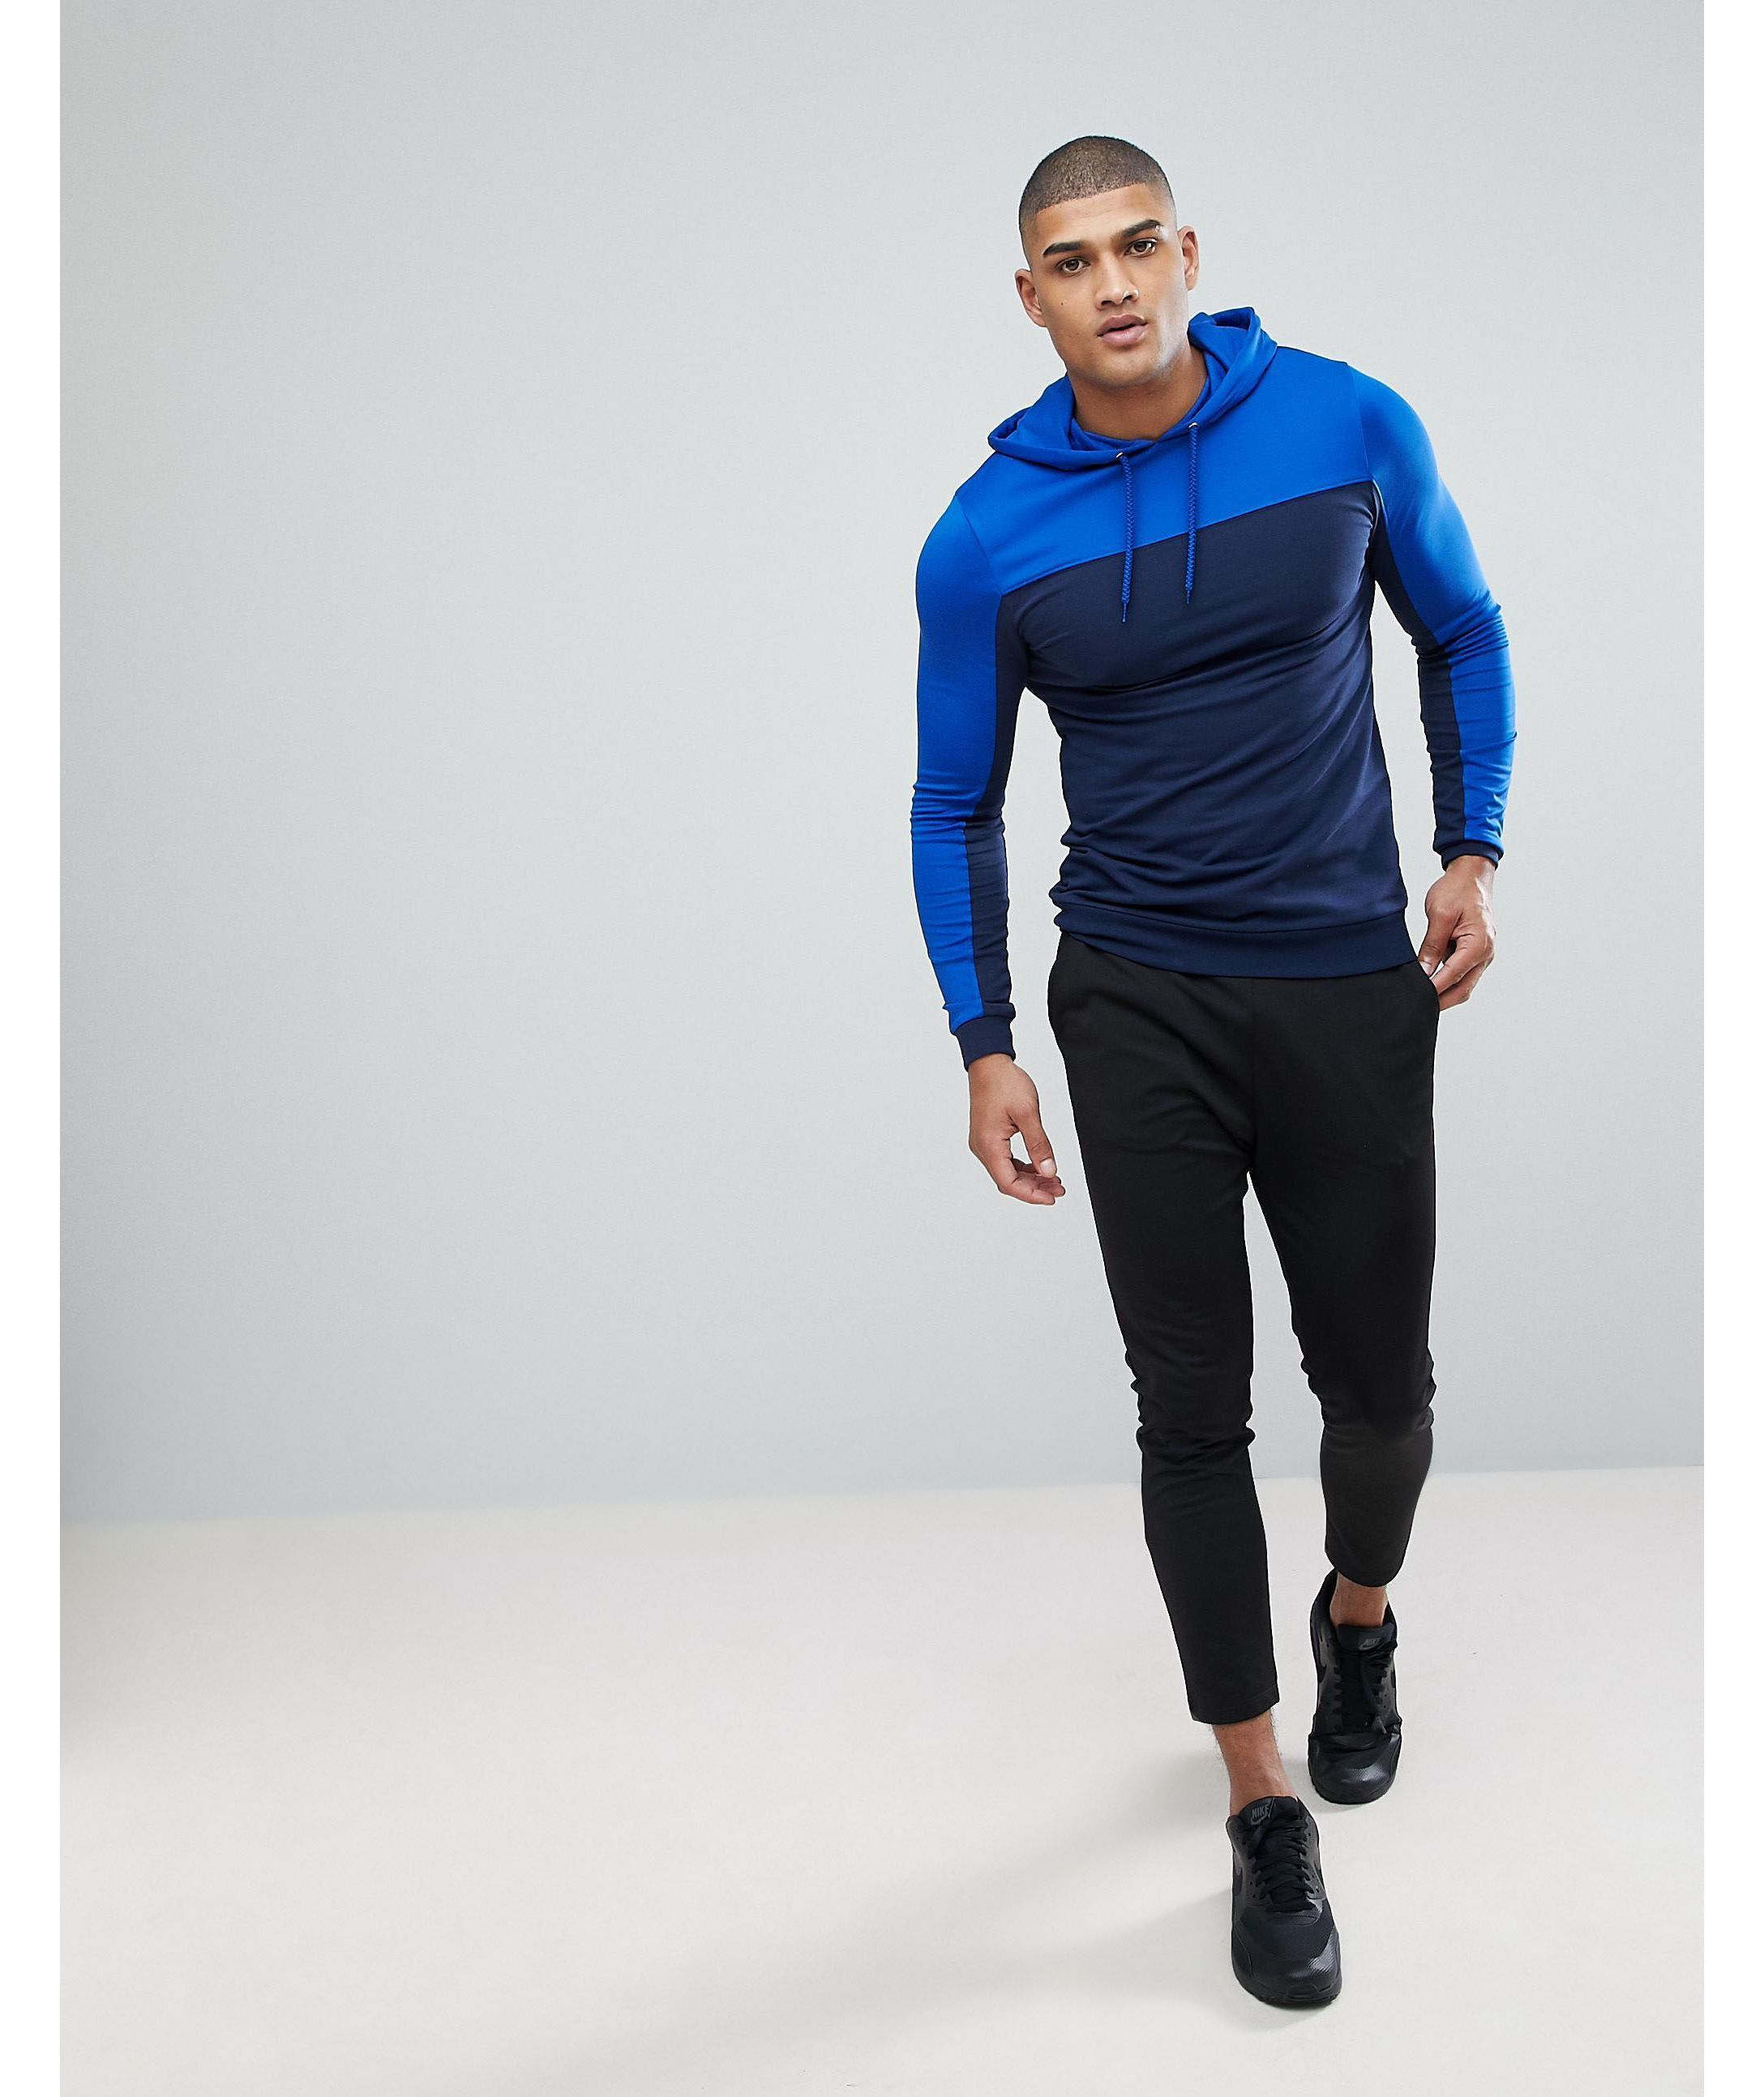 ★ASOS★ TALL Muscle パーカー  Poly Tricot  カラー ブロック